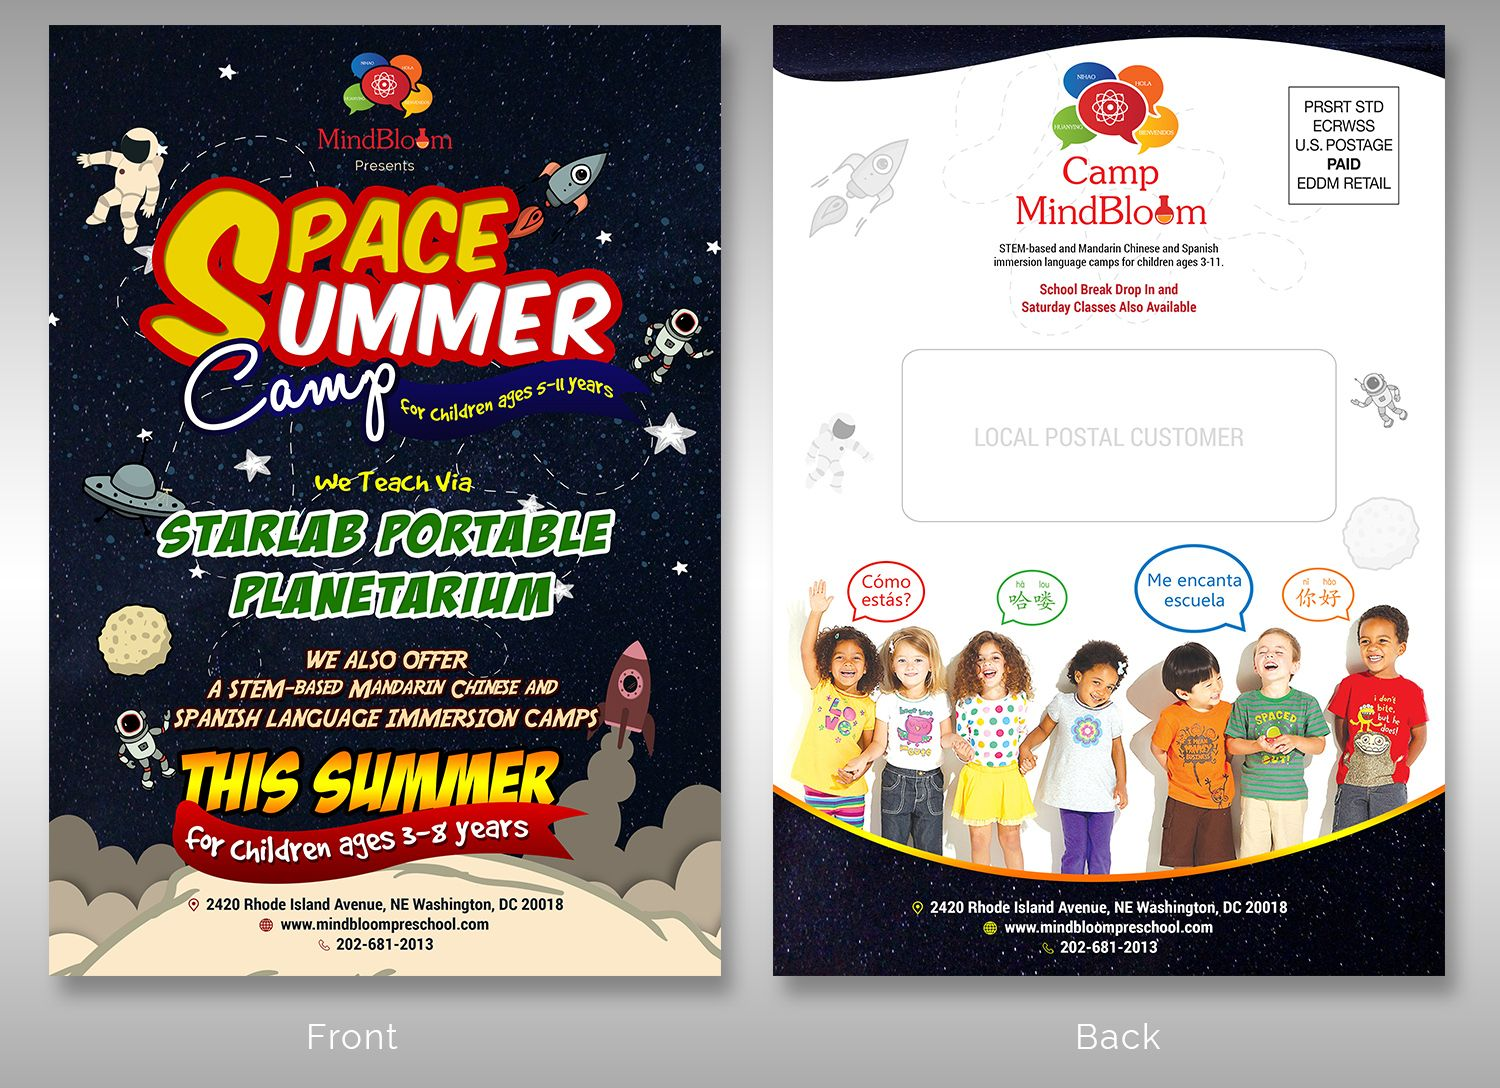 Flyer Design By Sd Web For Camp Mindbloom Needs A SpaceThemed